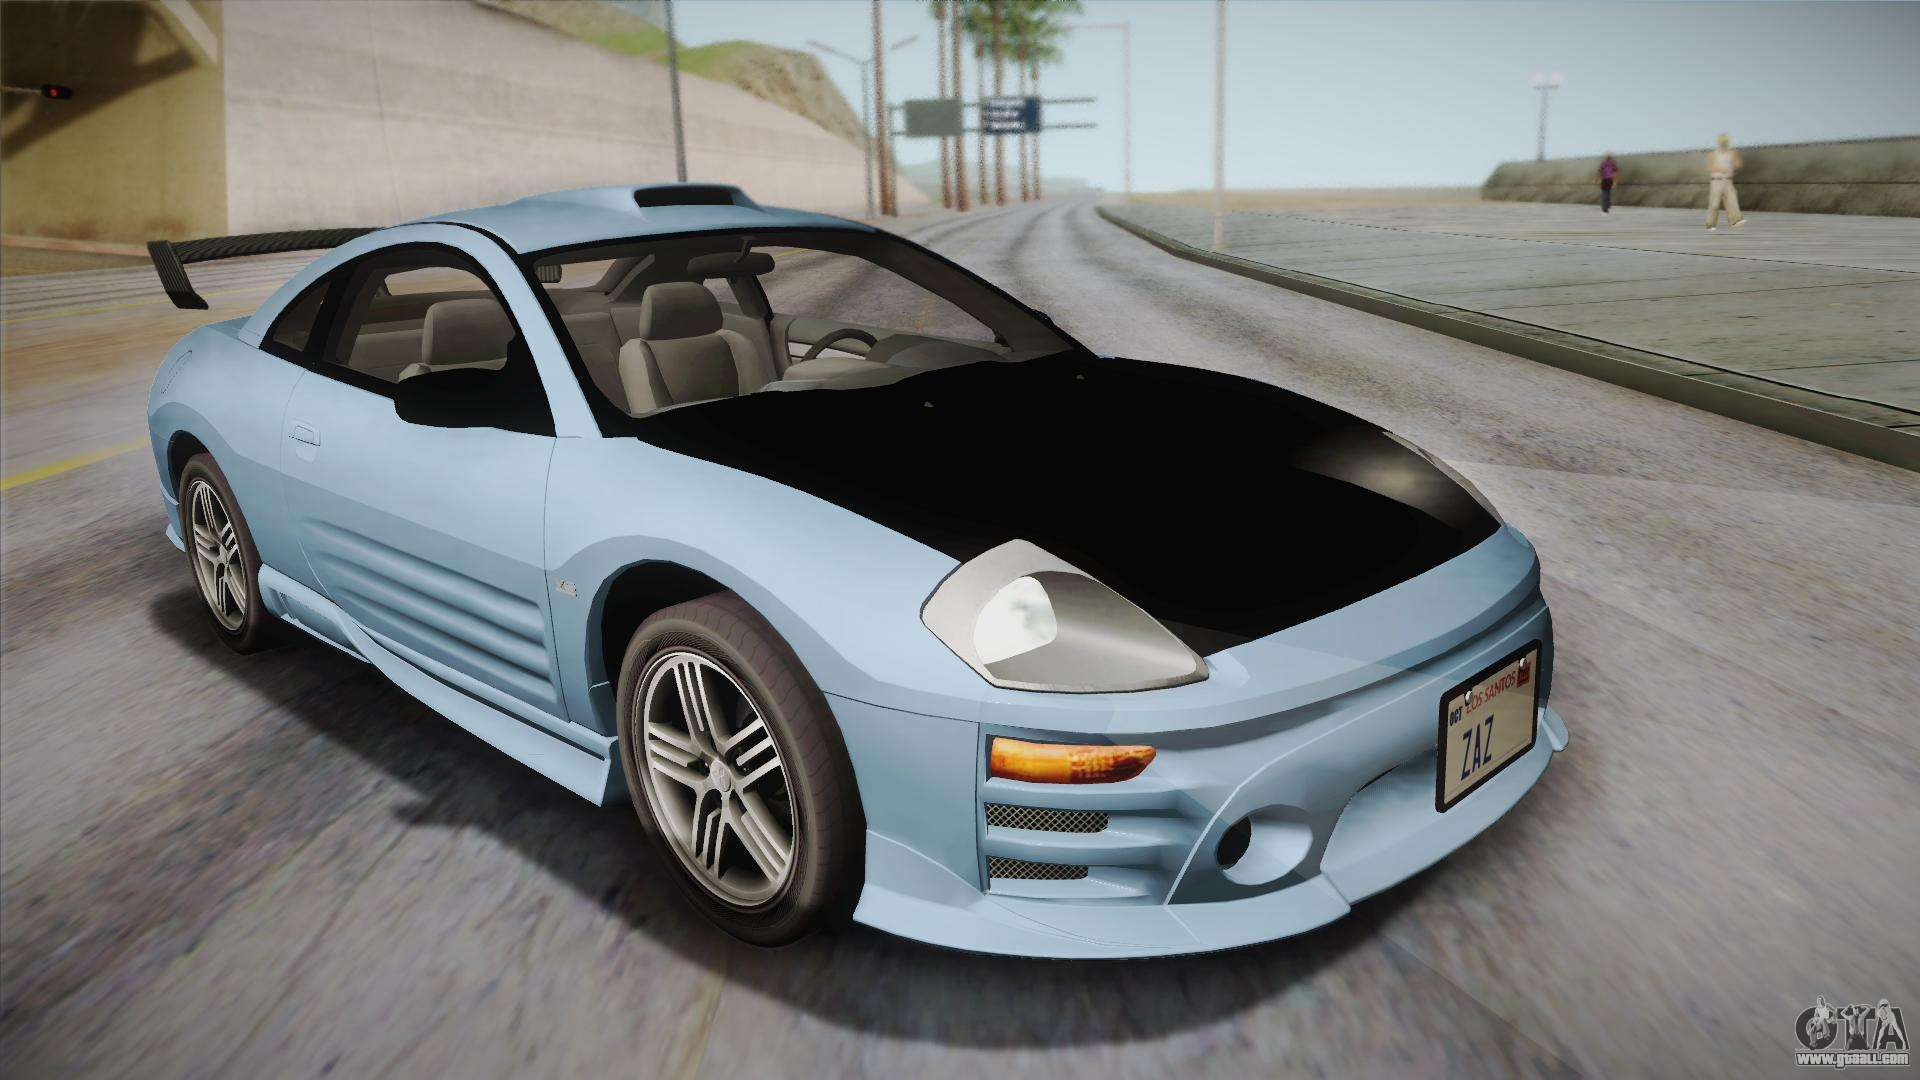 gts gta iii andreas sa hqlm view mkiii eclipse mitsubishi for side san mk cars